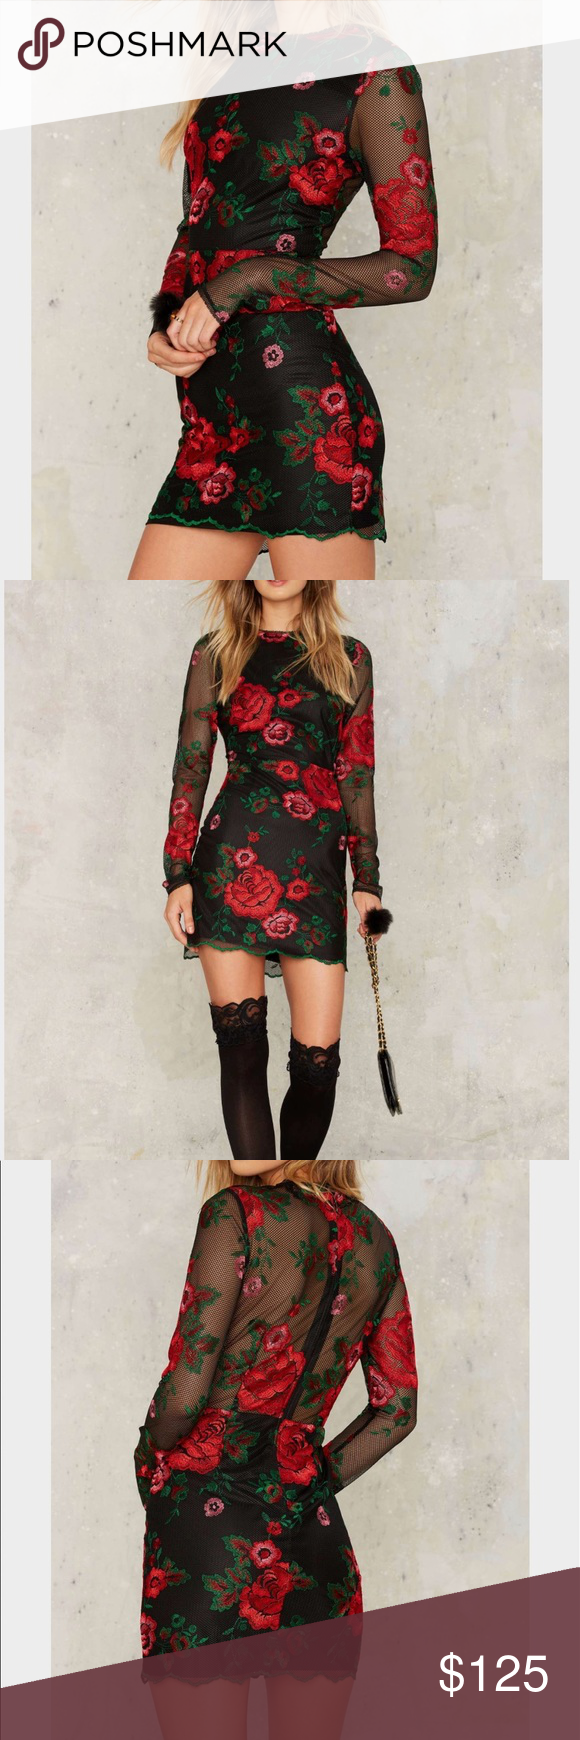 Nasty gal get sprung embroidered mini dress boutique embroidery